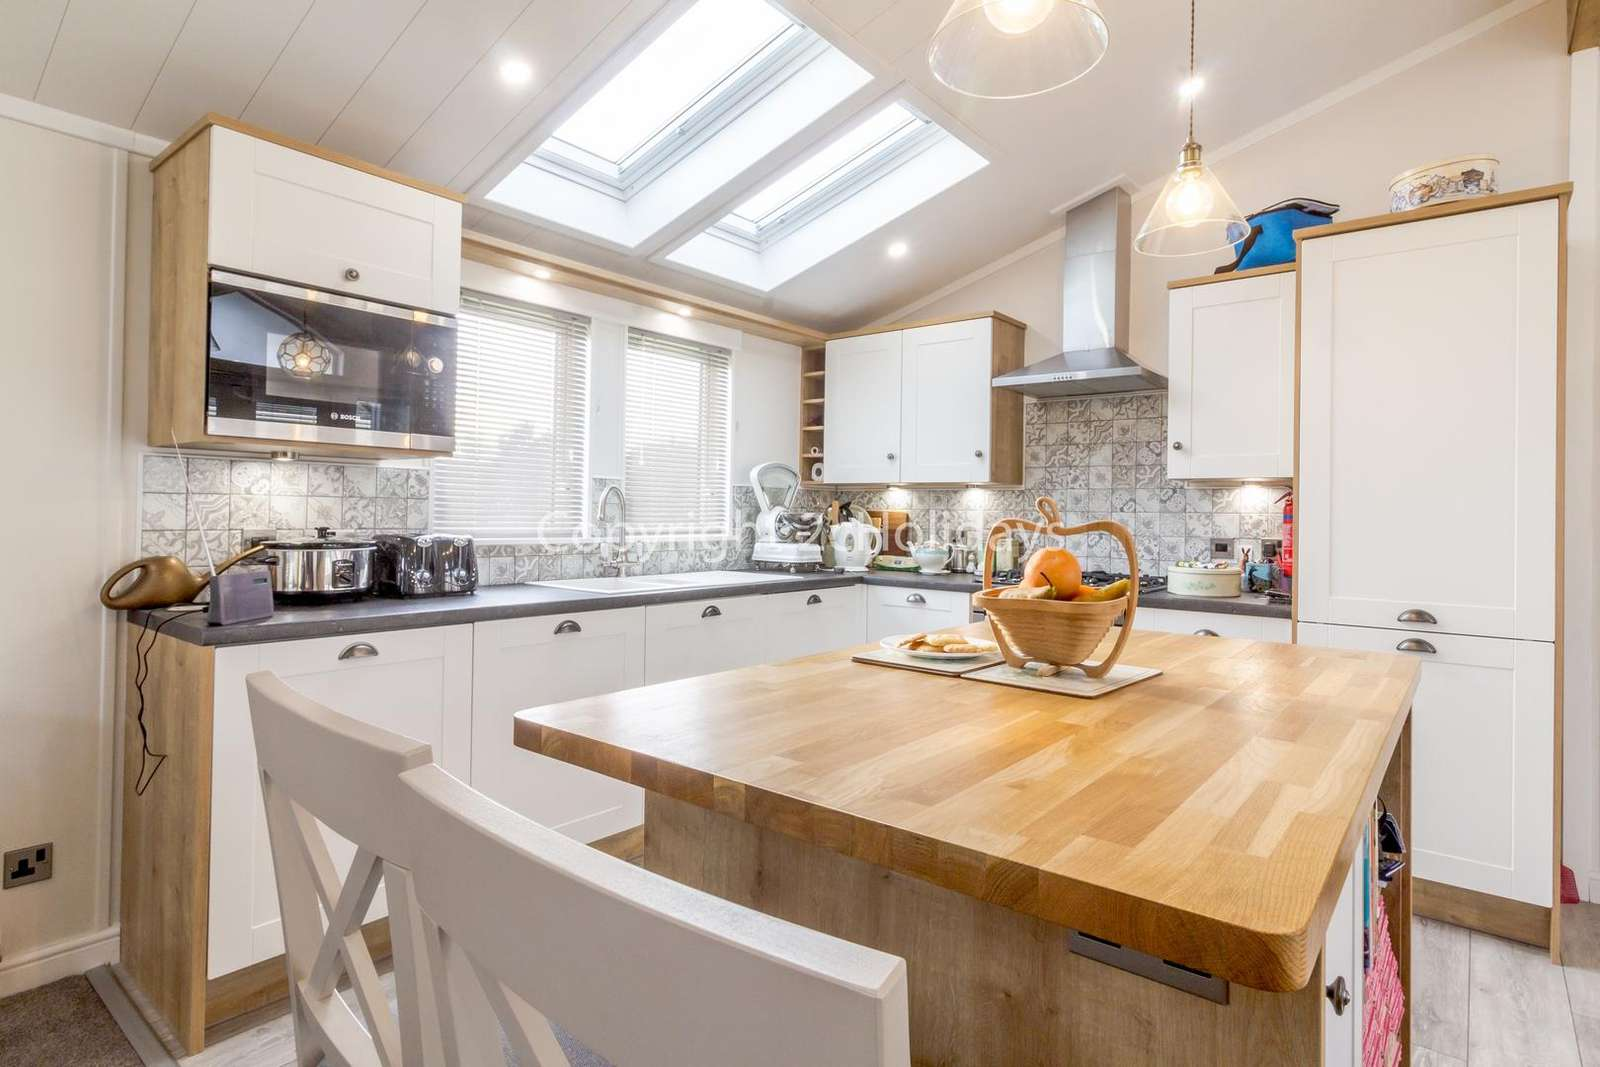 A fully quipped kitchen, perfect for self-catering holidays!